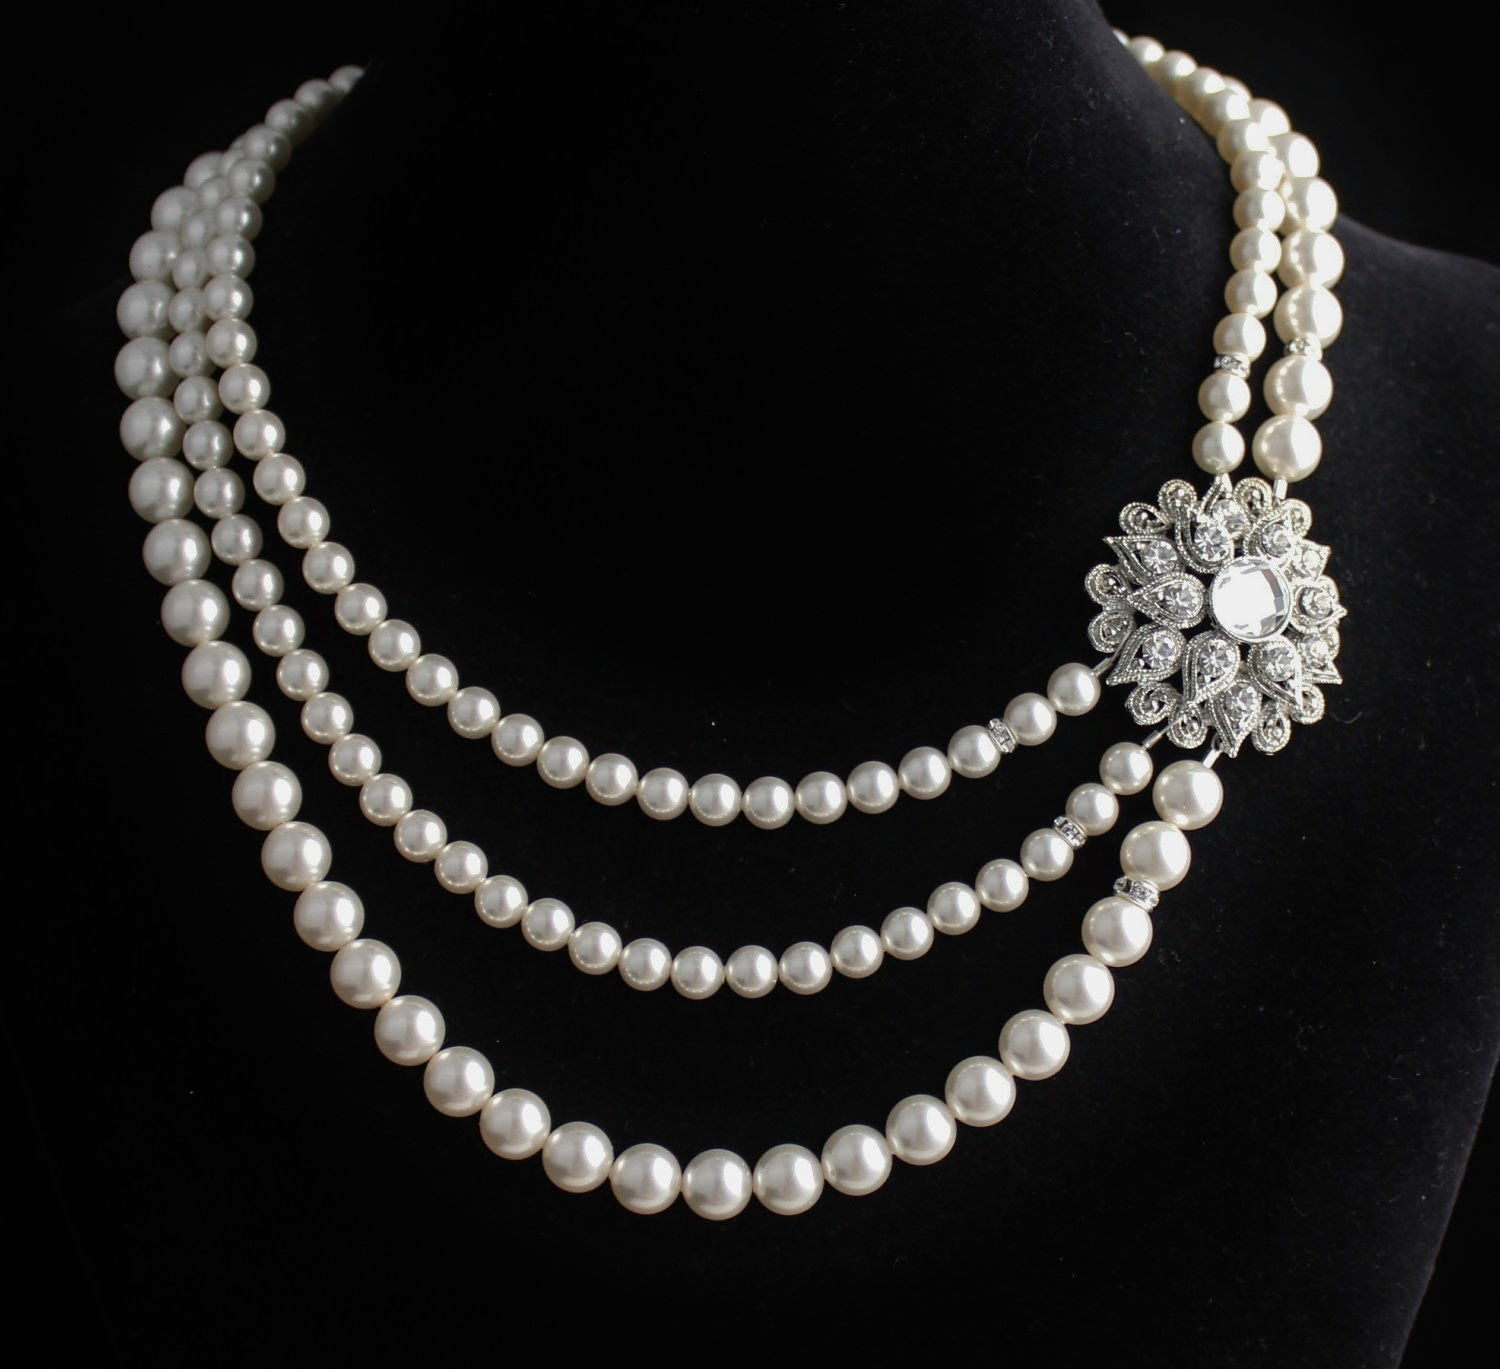 Pictures Of Diamond Necklaces